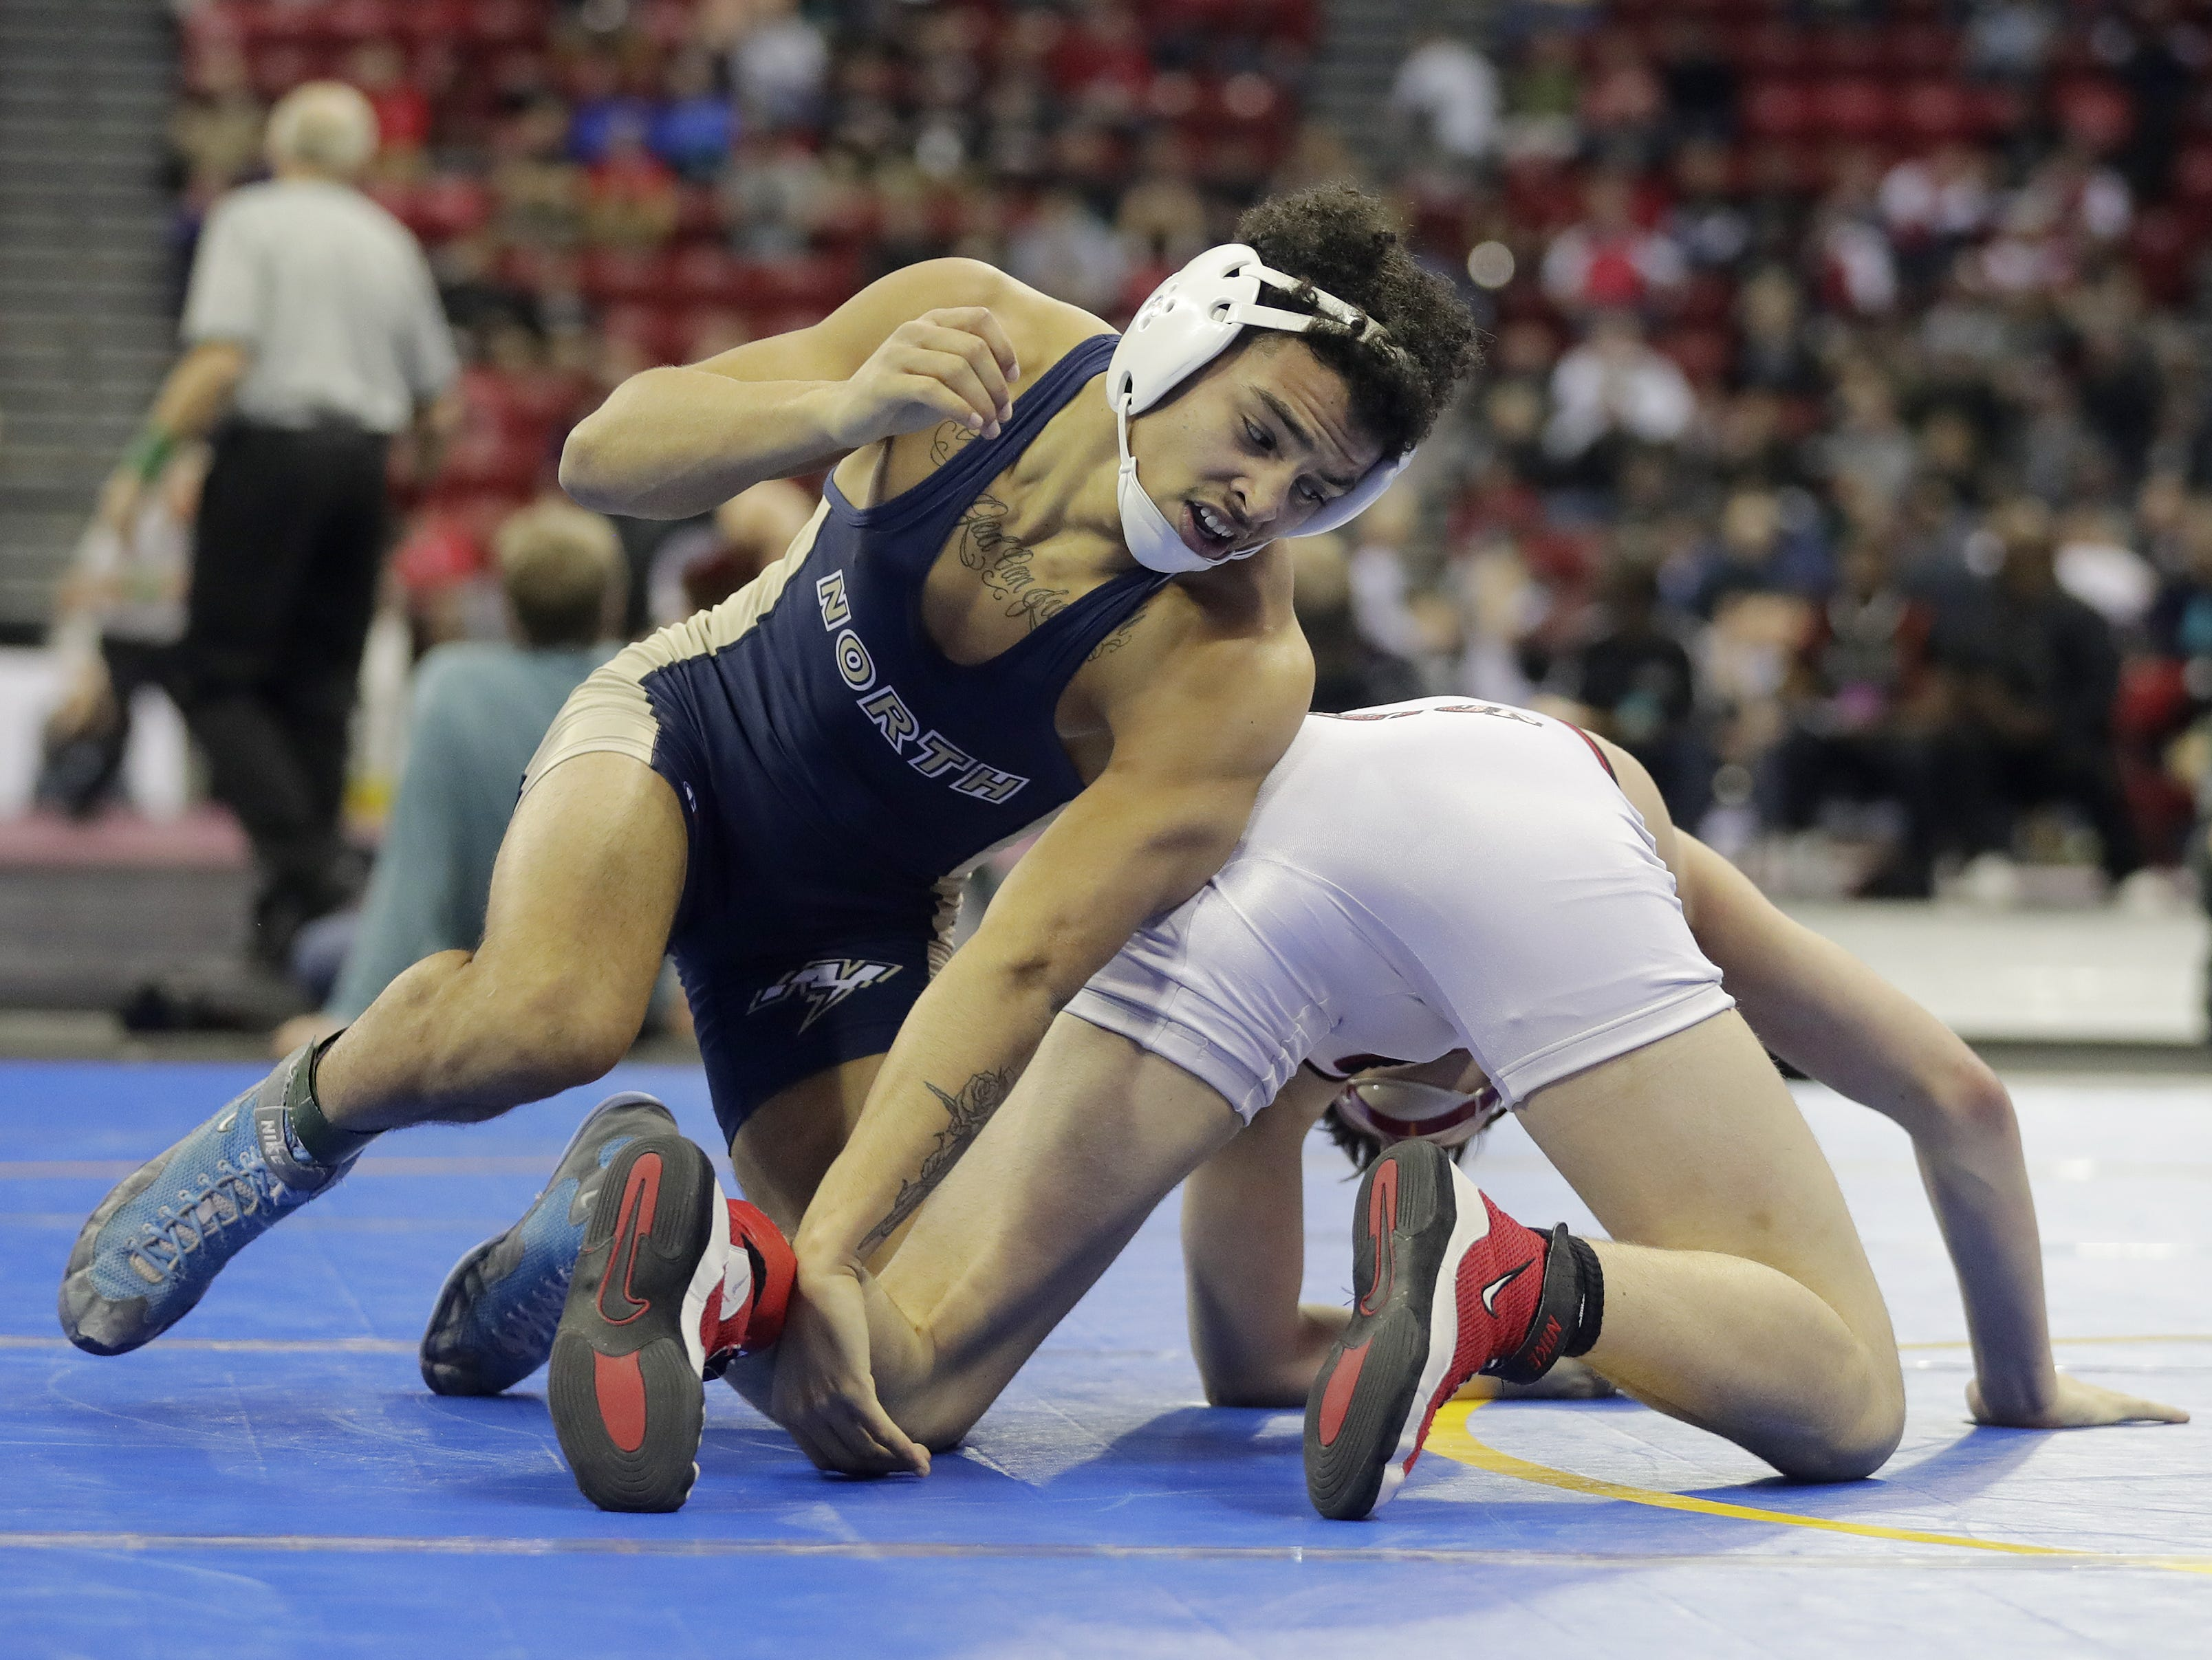 Appleton North's Terrell Williams wrestles in a Division 1 195-pound preliminary match at the WIAA state individual wrestling tournament at the Kohl Center on Thursday, February 21, 2019 in Madison, Wis. Adam Wesley/USA TODAY NETWORK-Wisconsin